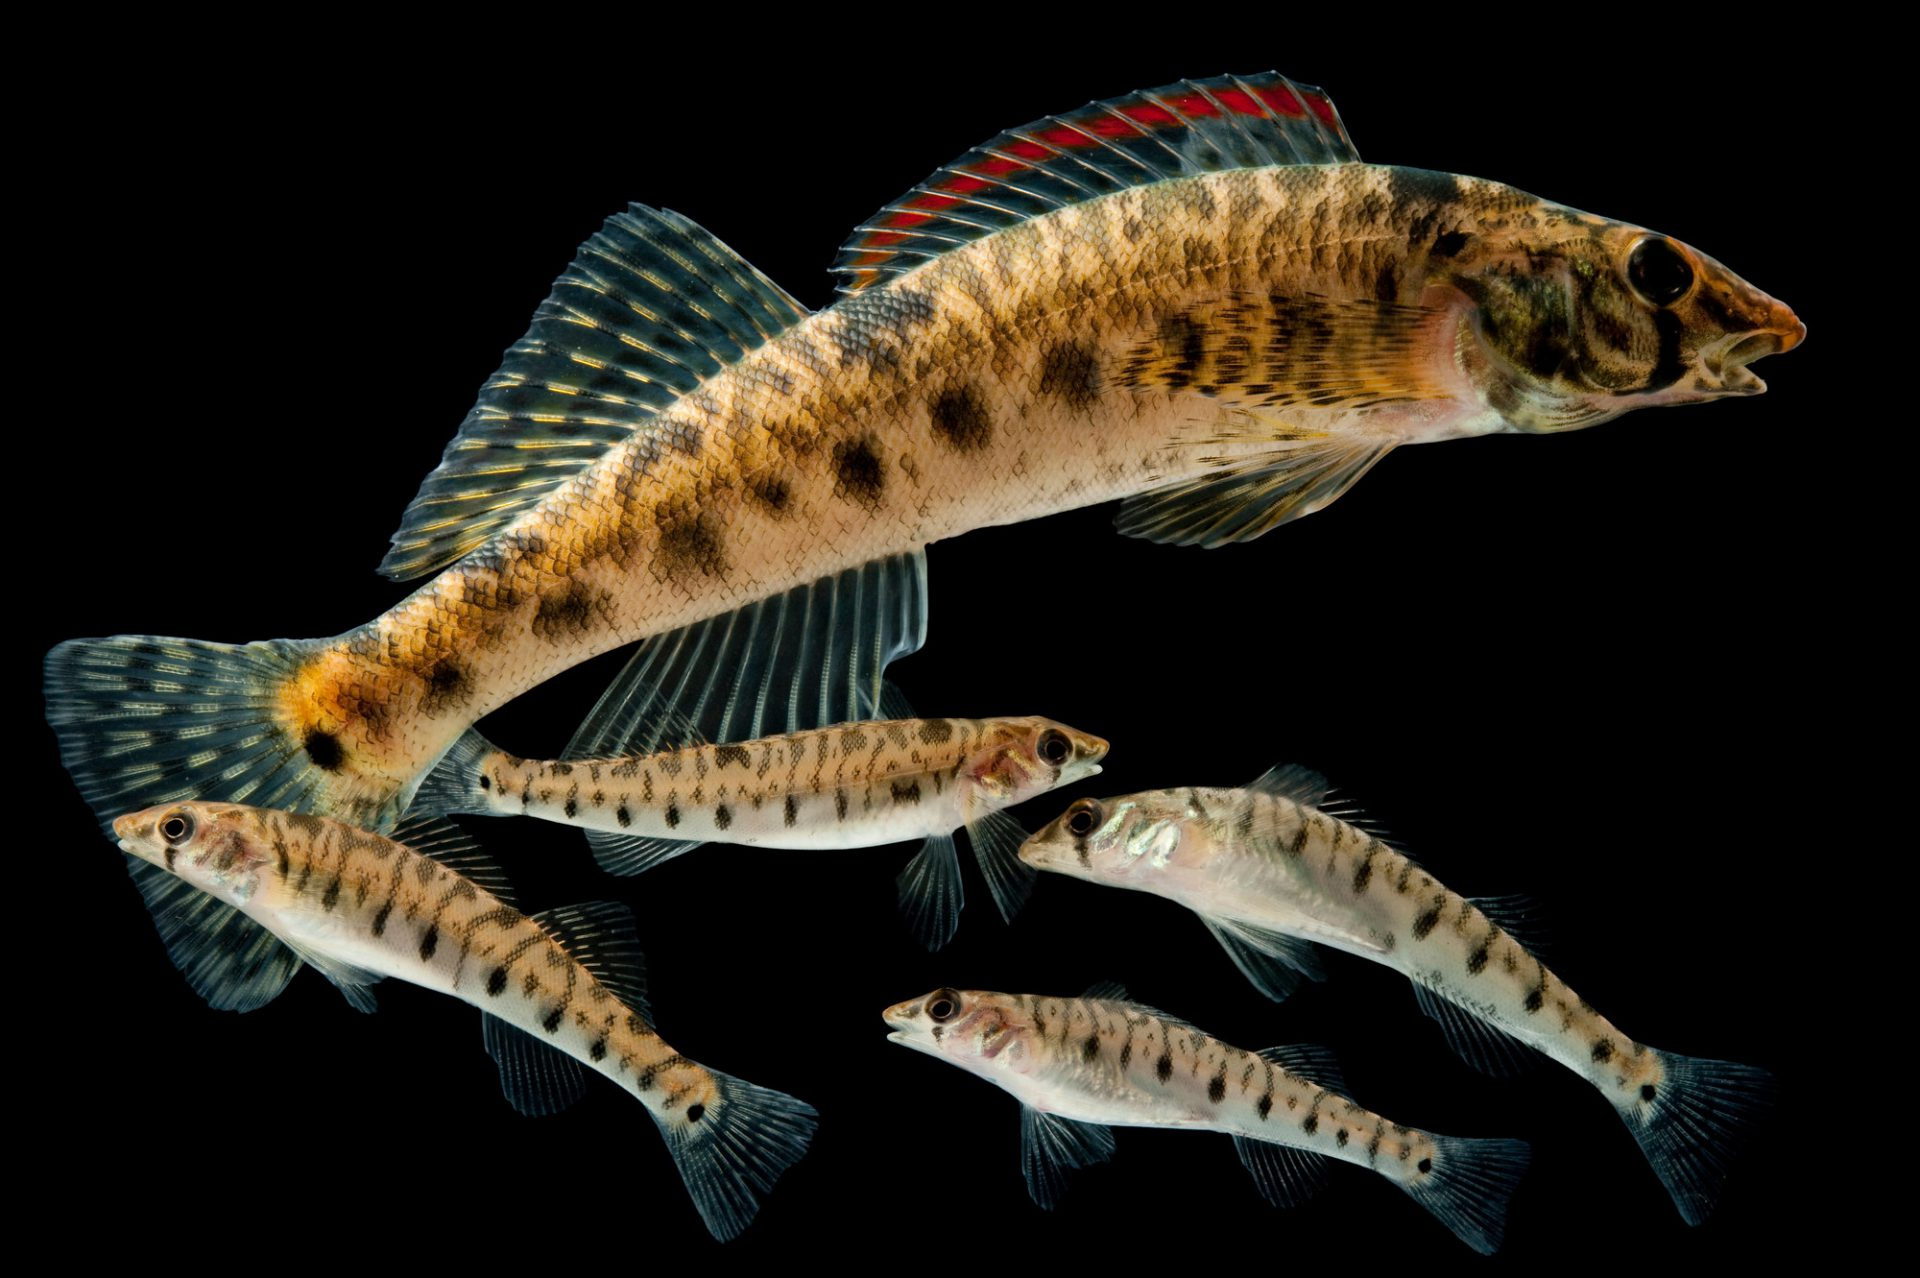 Vulnerable (IUCN) and federally endangered Roanoke logperch (Percina rex). Shown is an adult with juveniles.